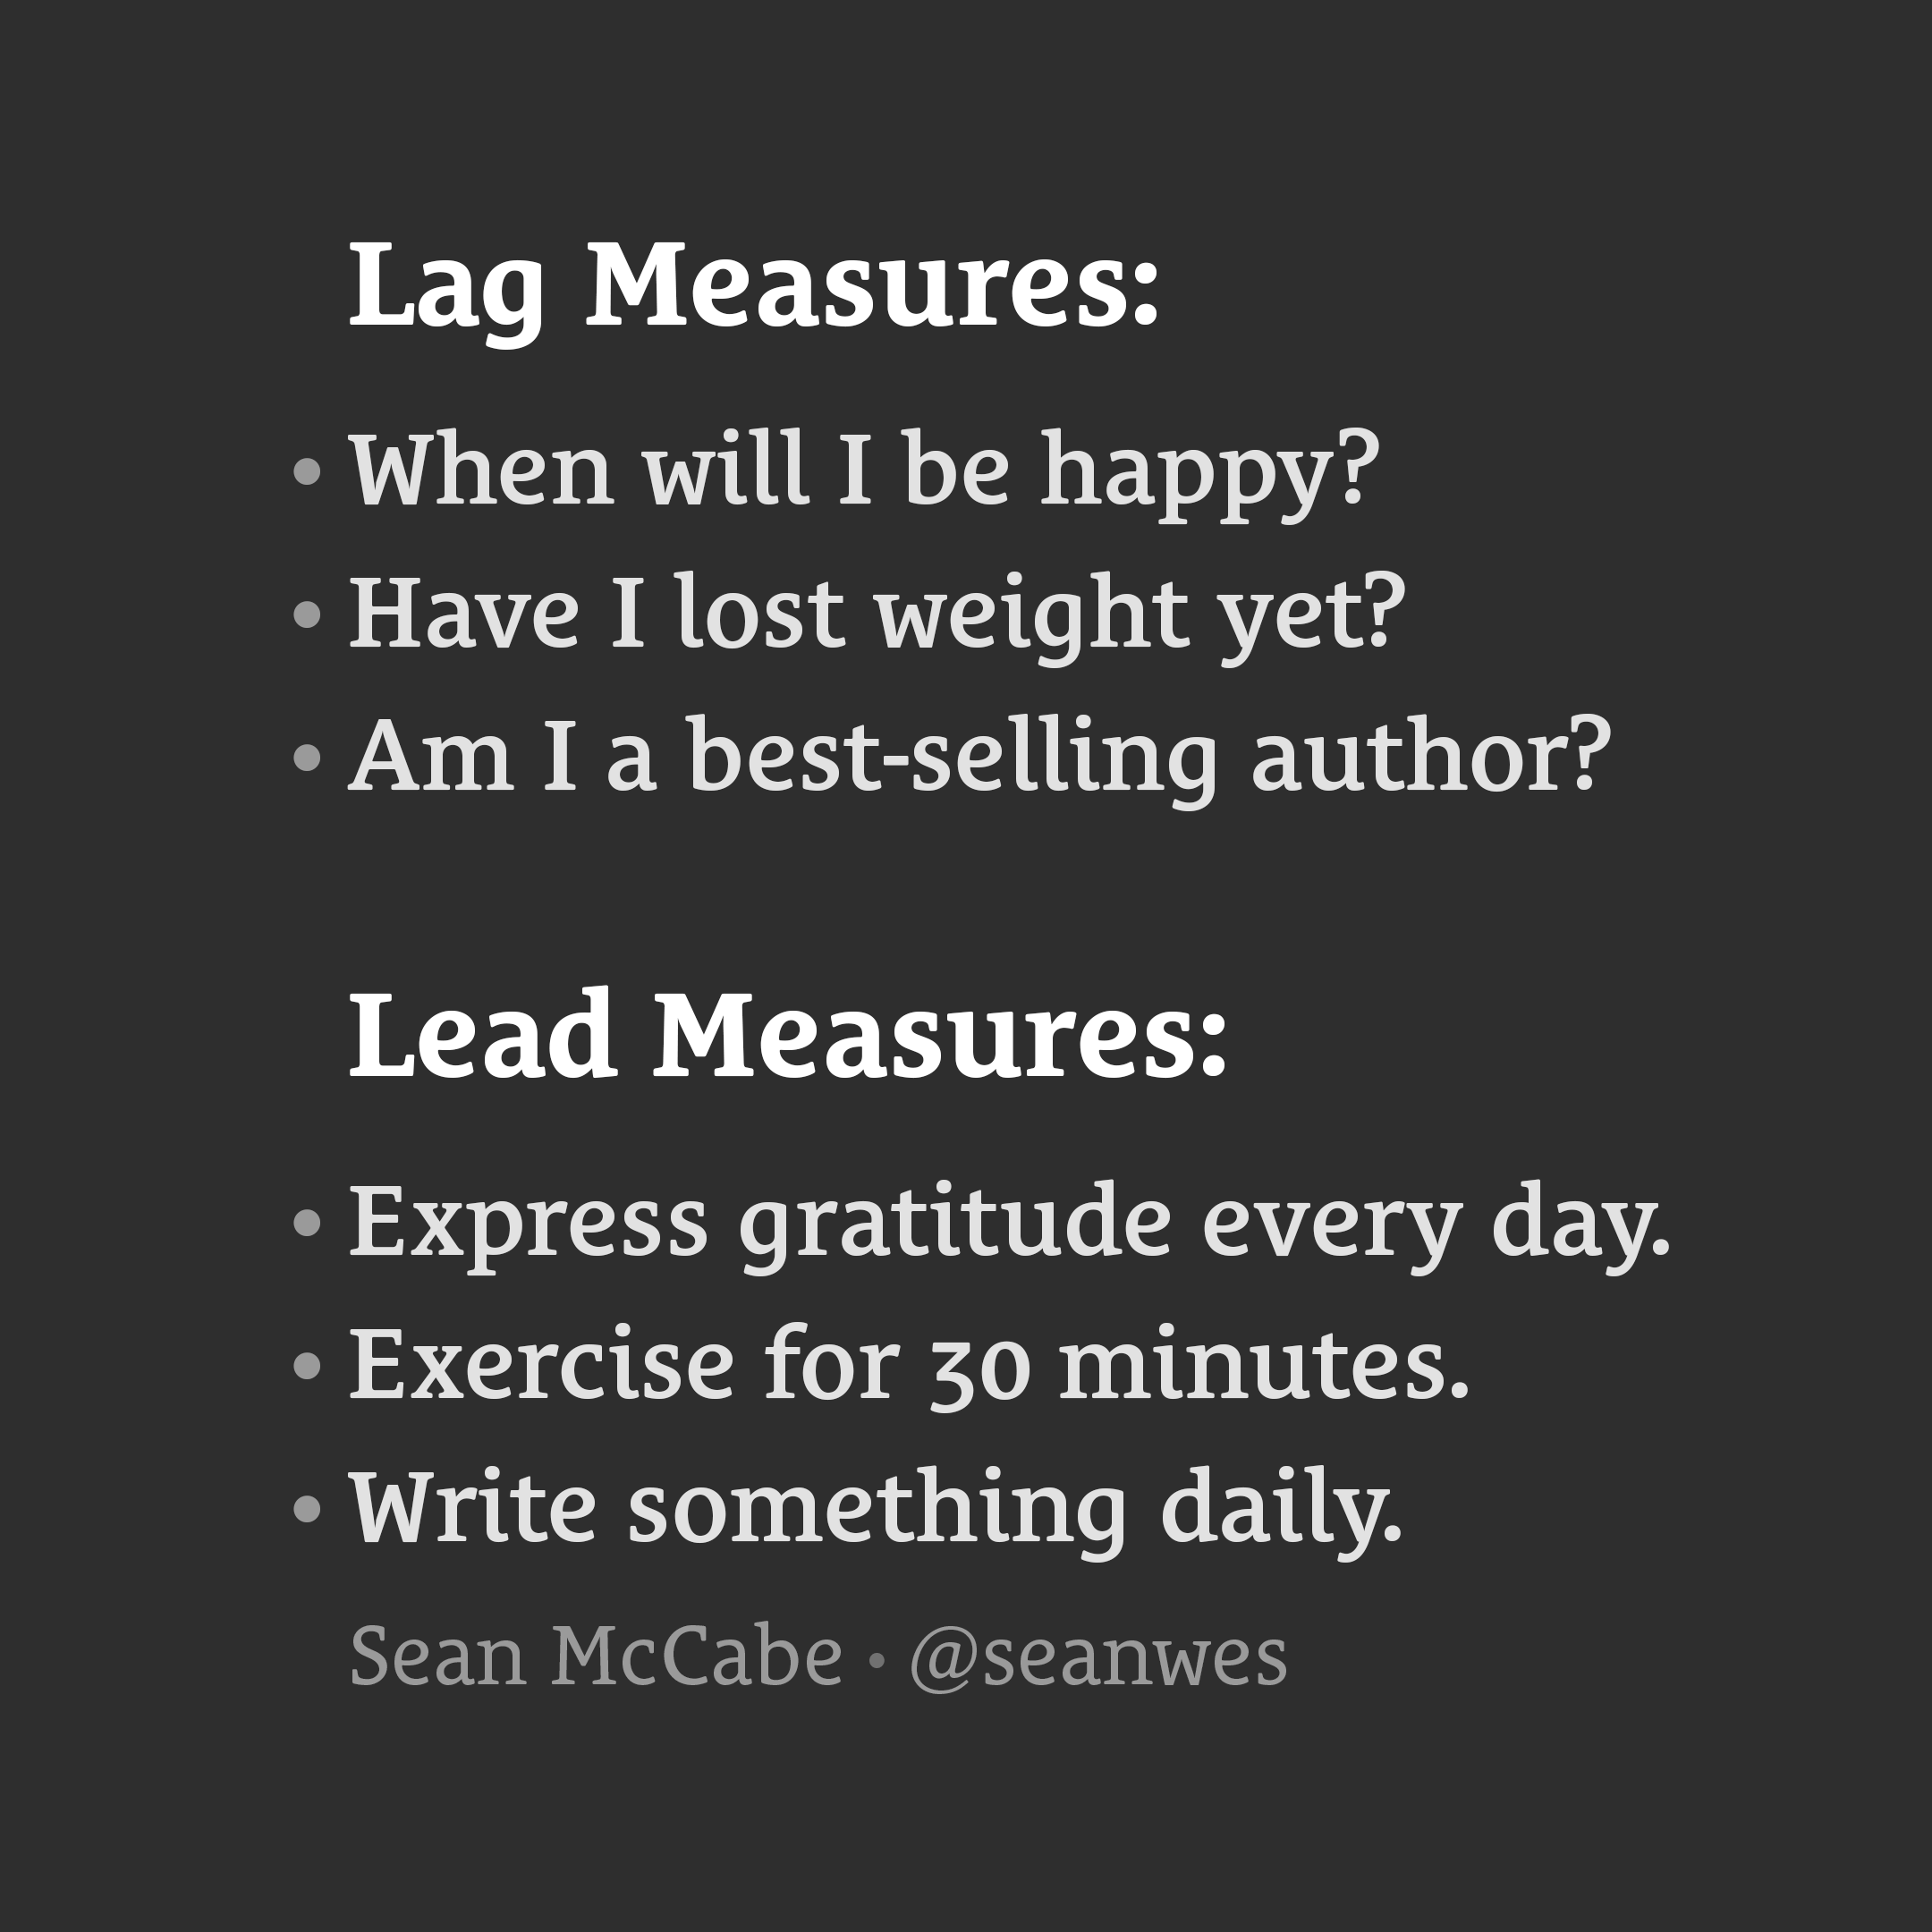 Lag Measures vs. Lead Measures